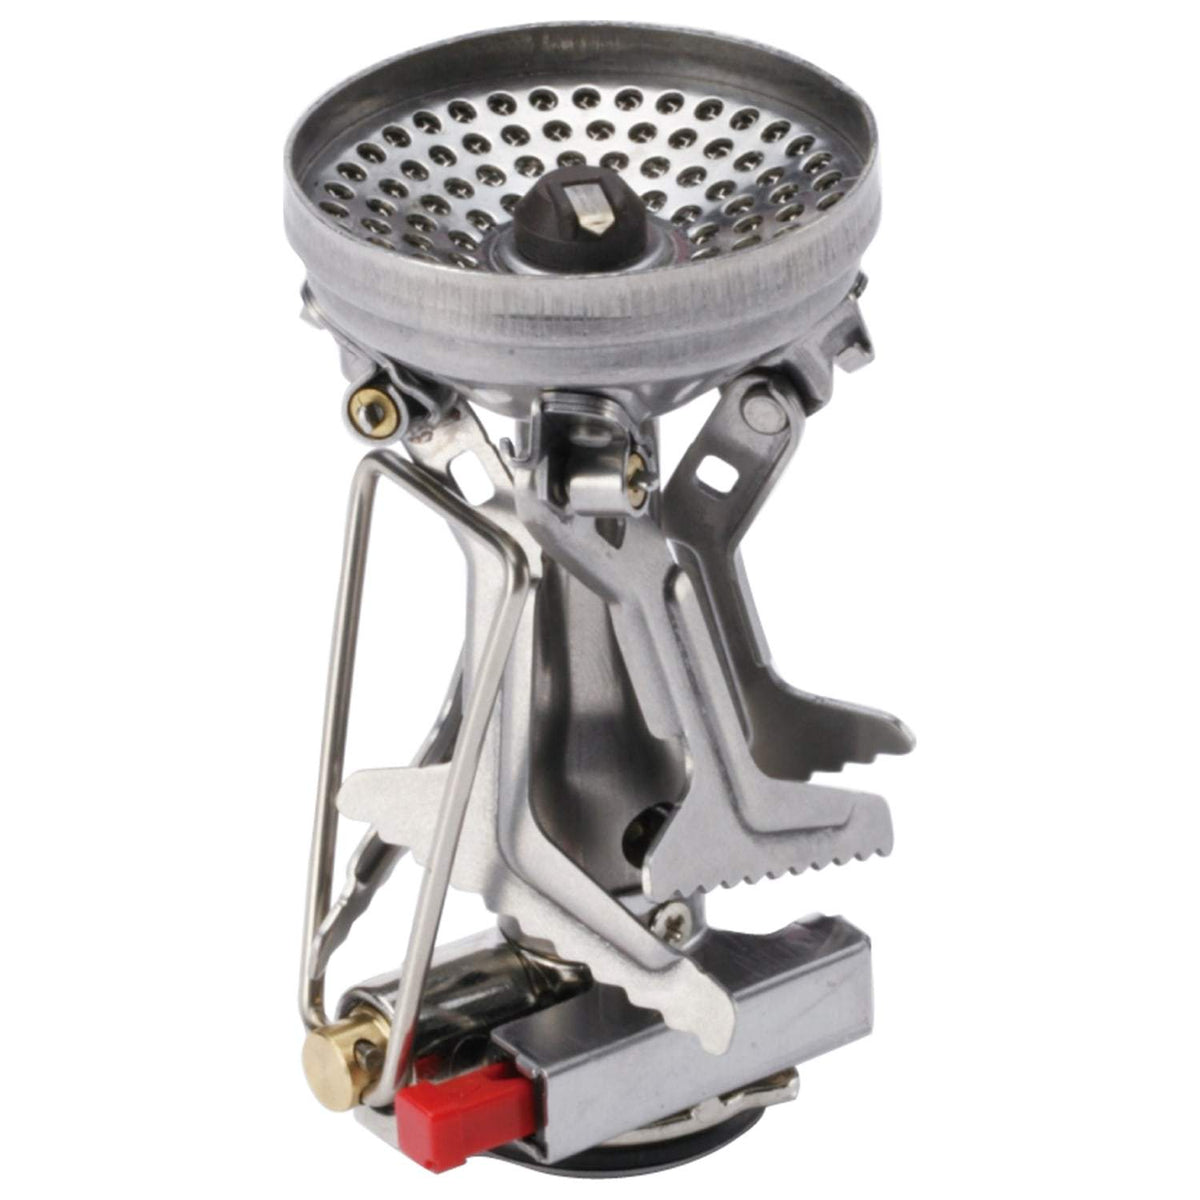 Amicus Stove